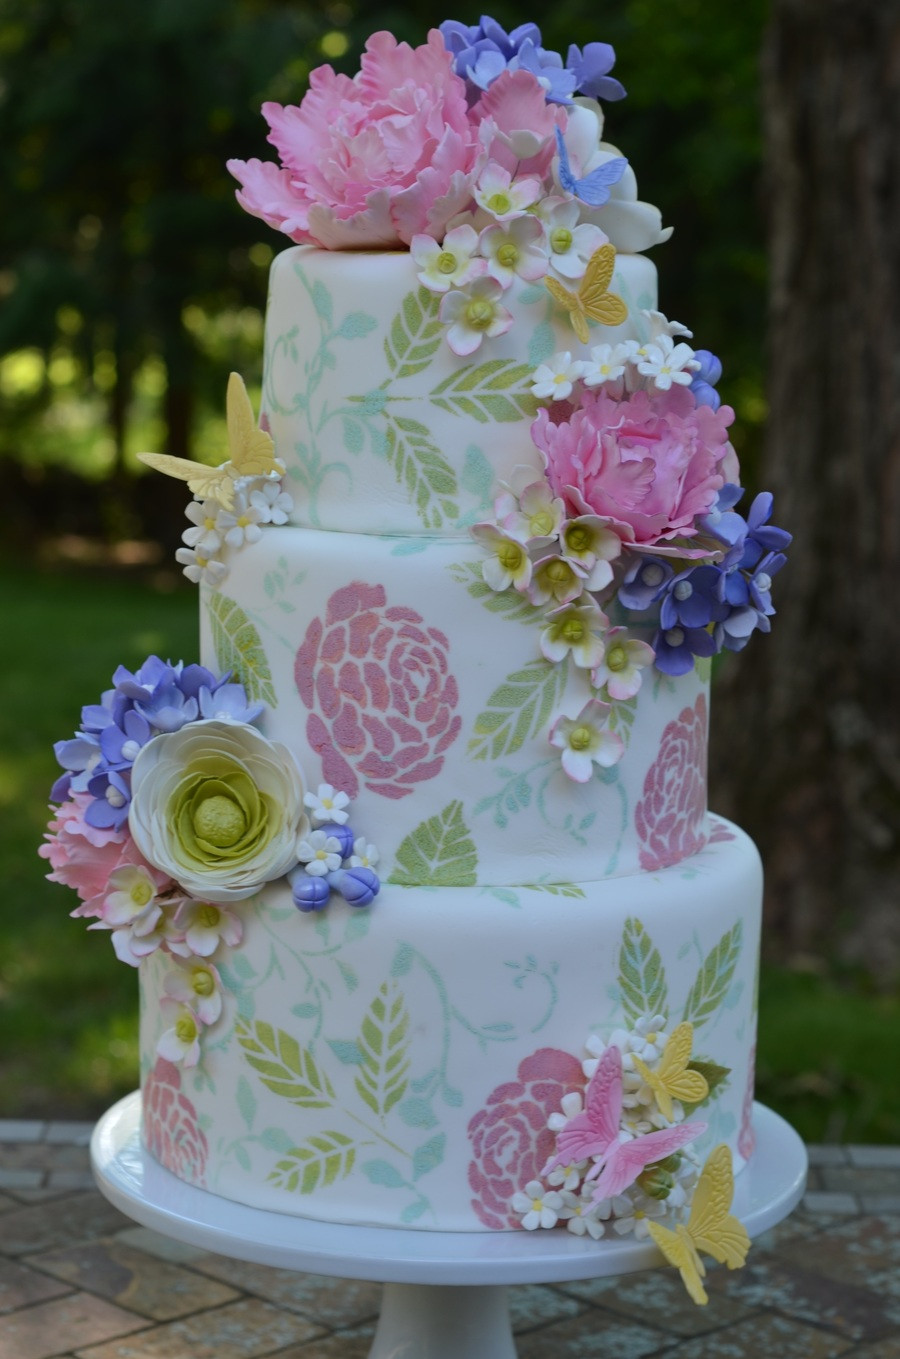 Gumpaste Flowers For Wedding Cakes  Garden Wedding Cake With Gumpaste Flowers CakeCentral